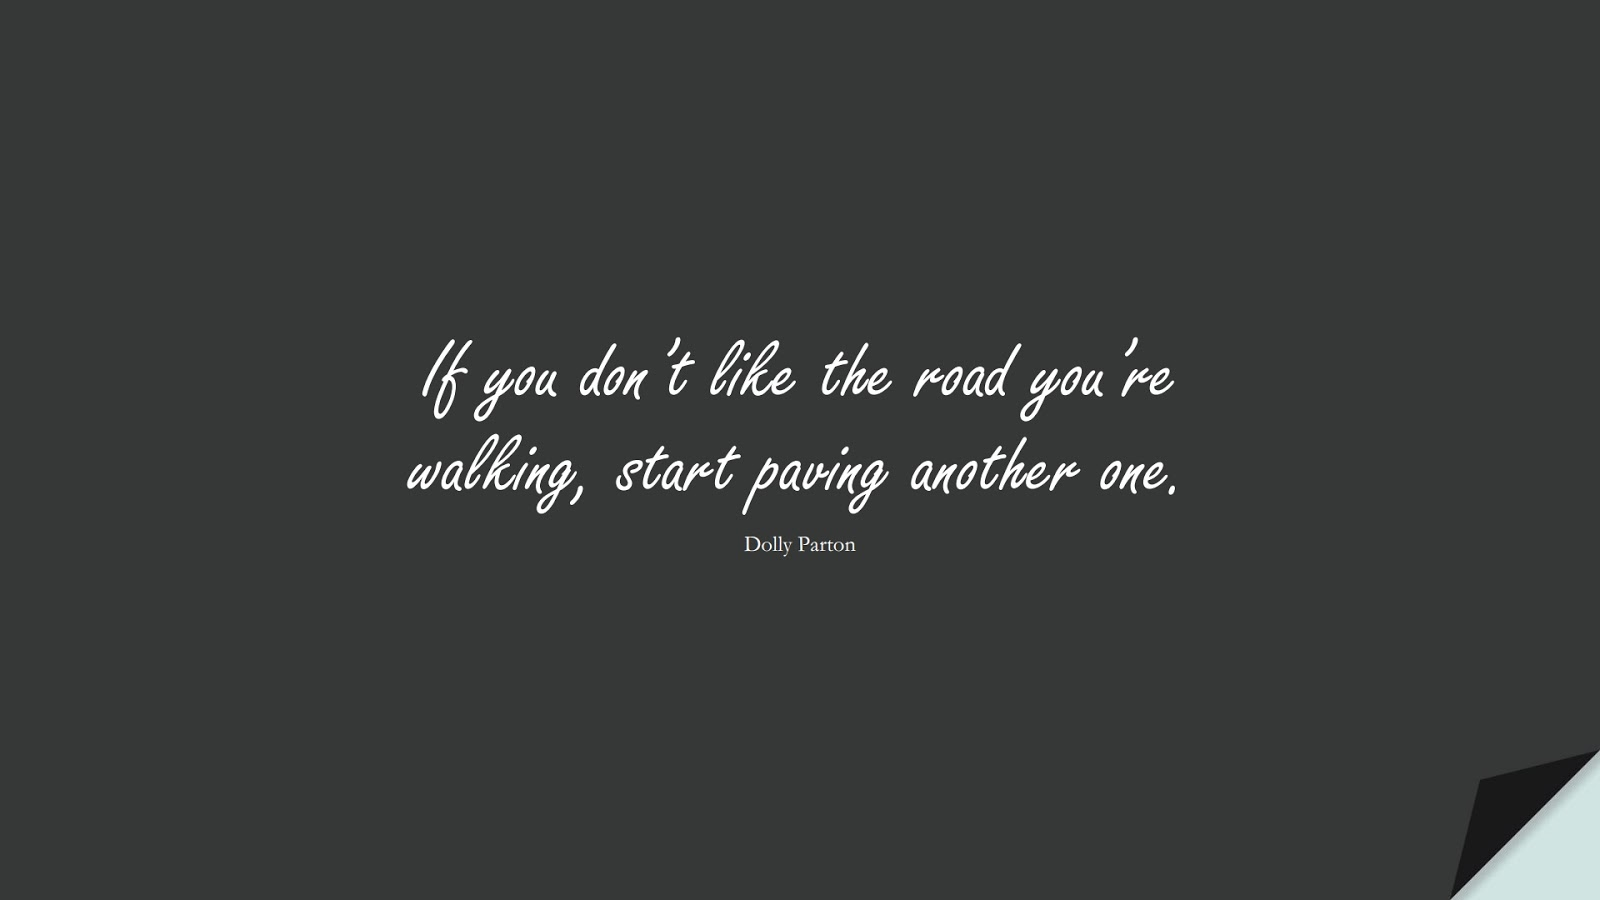 If you don't like the road you're walking, start paving another one. (Dolly Parton);  #PositiveQuotes